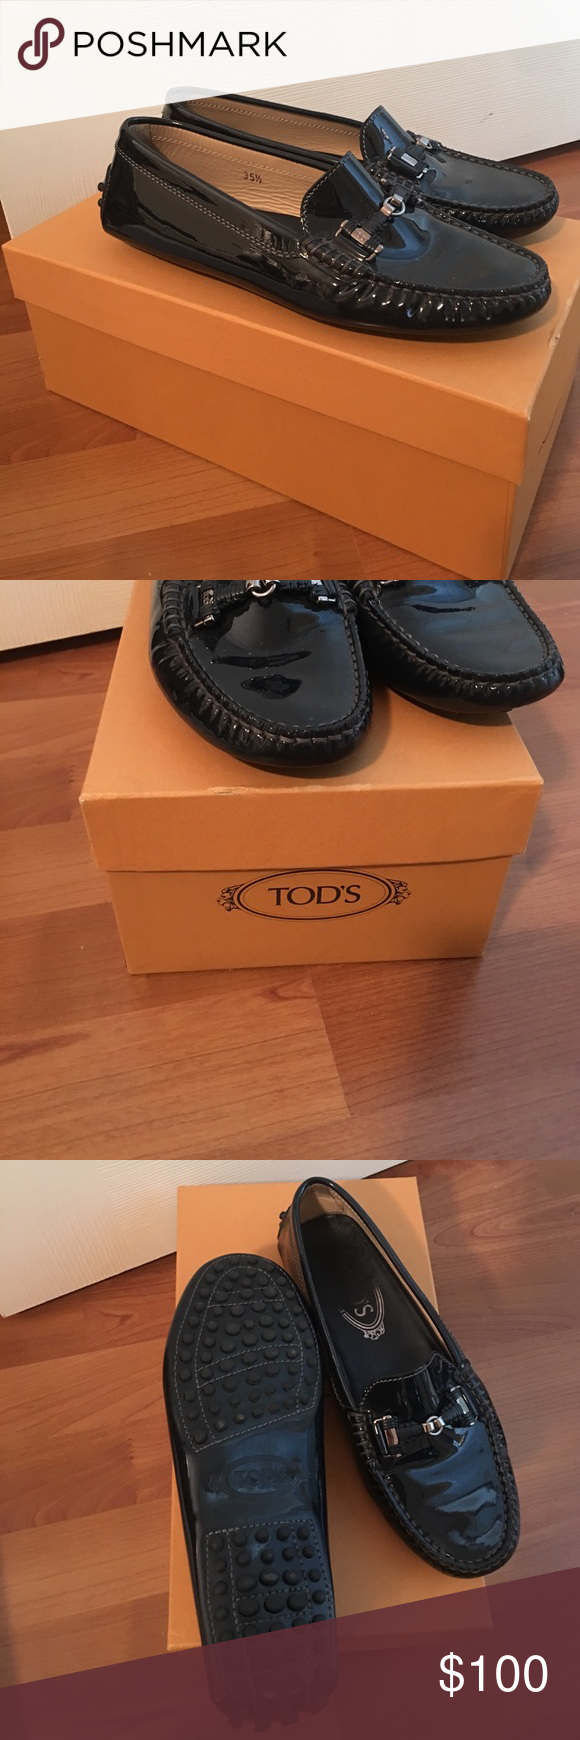 Tod'snavy blue patent leather drivers Lightly used, in great shape! Original box and dust bag included  - Made in Italy Patent leather upper Exposed hand stitching Tod's Double T buckle in branded metal Double fringe Iconic rubber outsole with embossed pebbles Care and mantainence tag included Branded dustbag Tod's Shoes Flats & Loafers